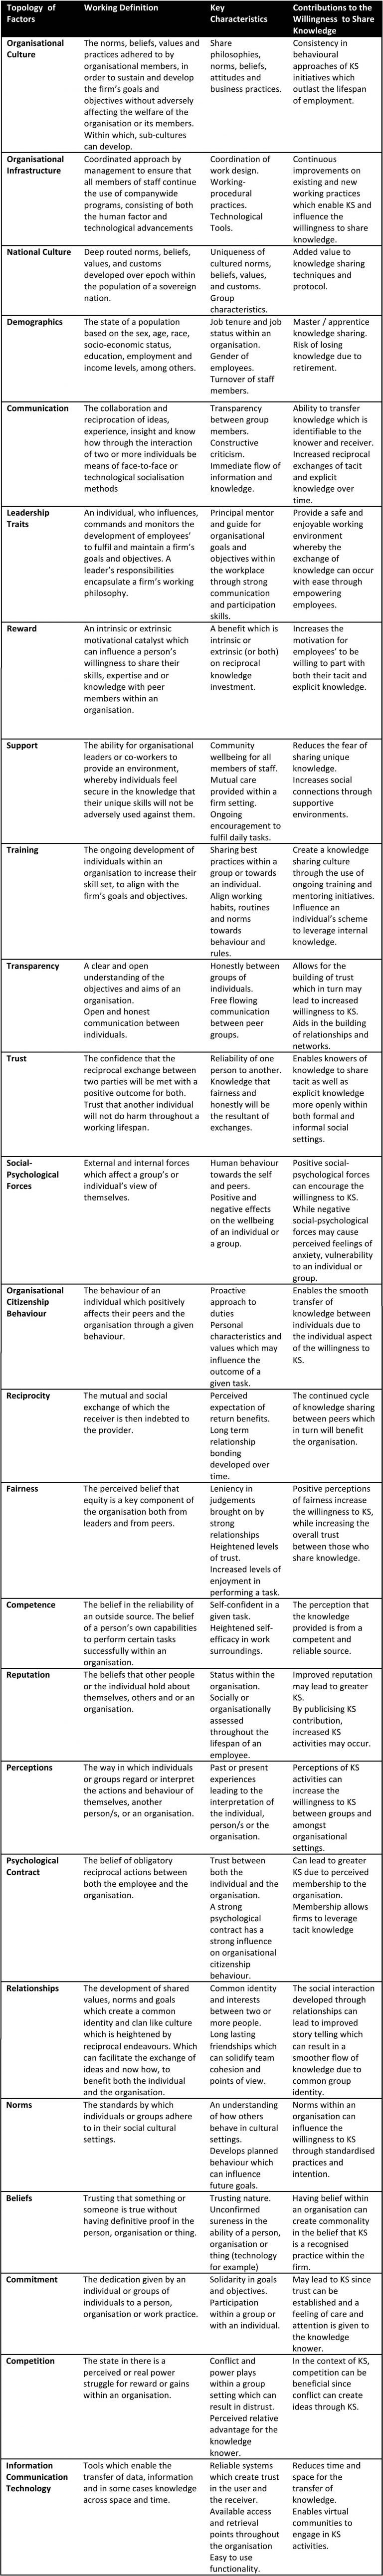 Categorised knowledge sharing factors